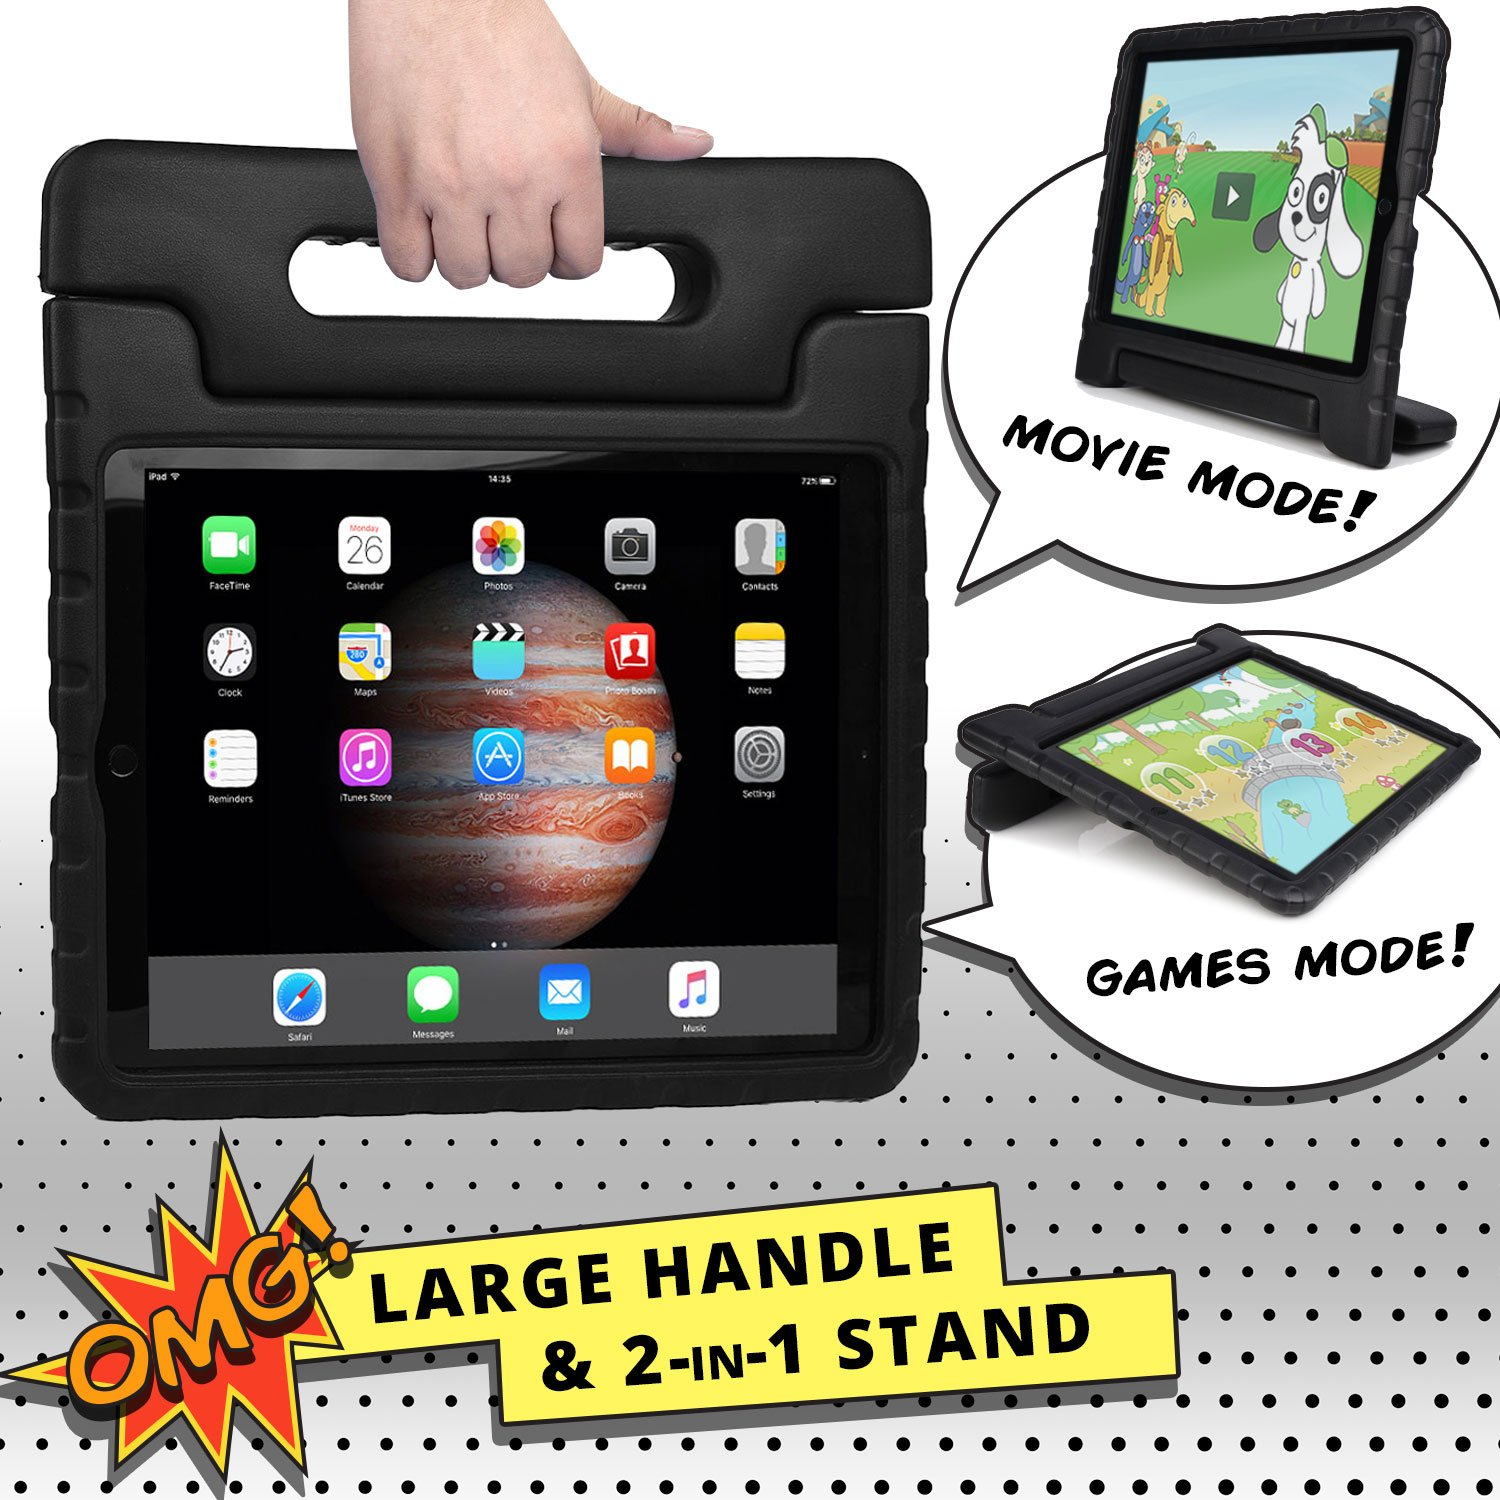 COOPER DYNAMO Shock Proof Kids case compatible with iPad Pro 12.9 | Heavy Duty Kidproof Cover for Kids | Girls, Boys, School | Kid Friendly Handle & Stand, Screen Protector | Apple A1584 A1652 (Black) by Cooper Cases (Image #7)